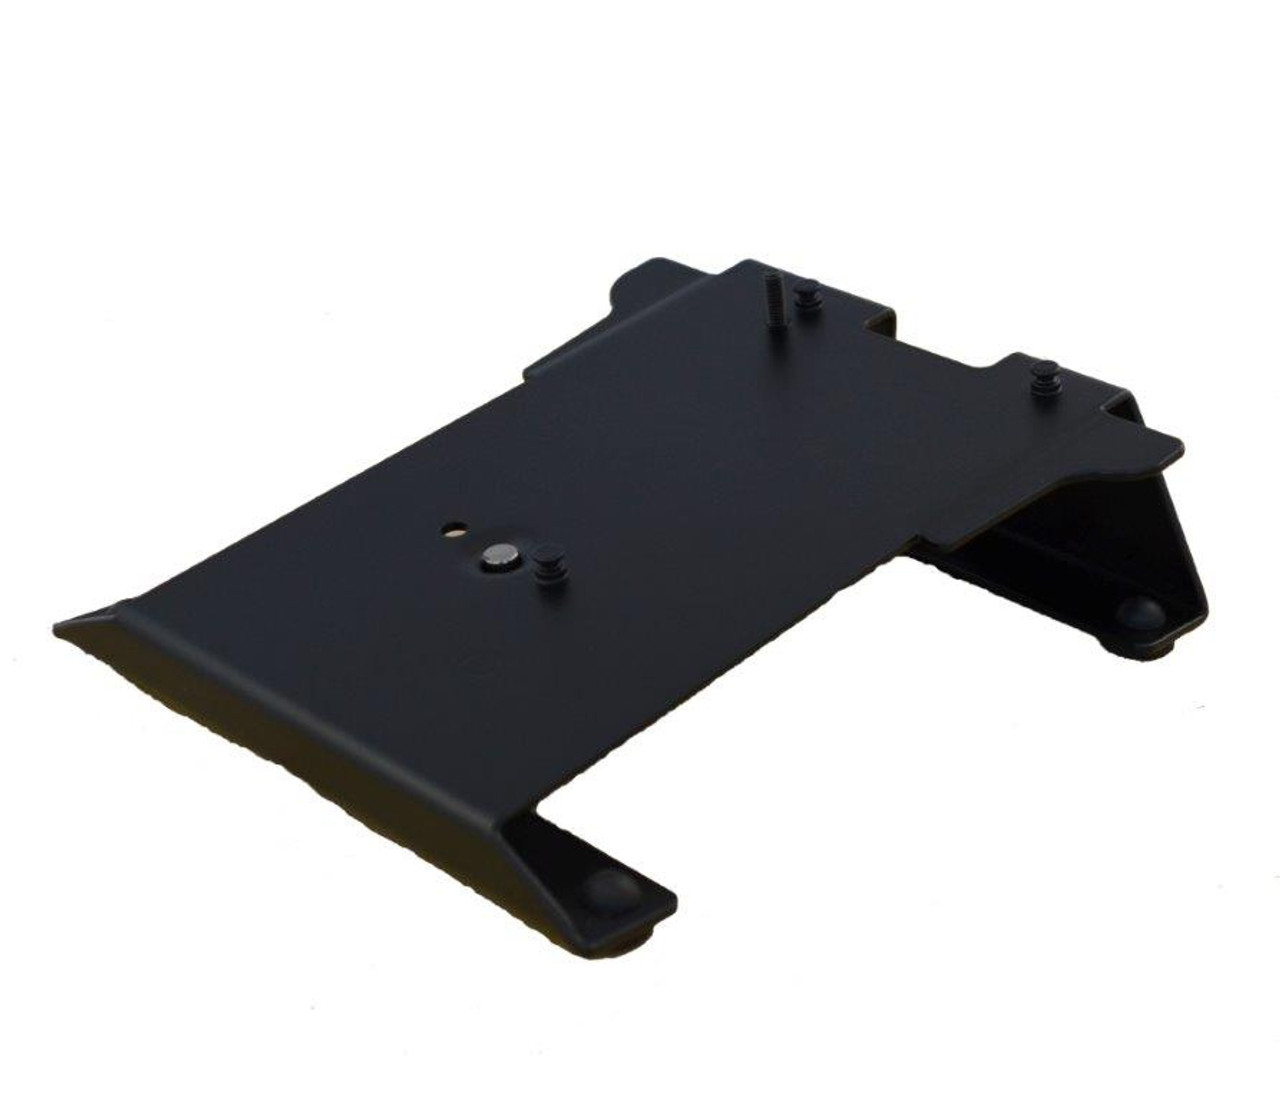 VeriFone MX925 Credit Card Stand Fixed Angle Wedge Stand by Swivel Stands